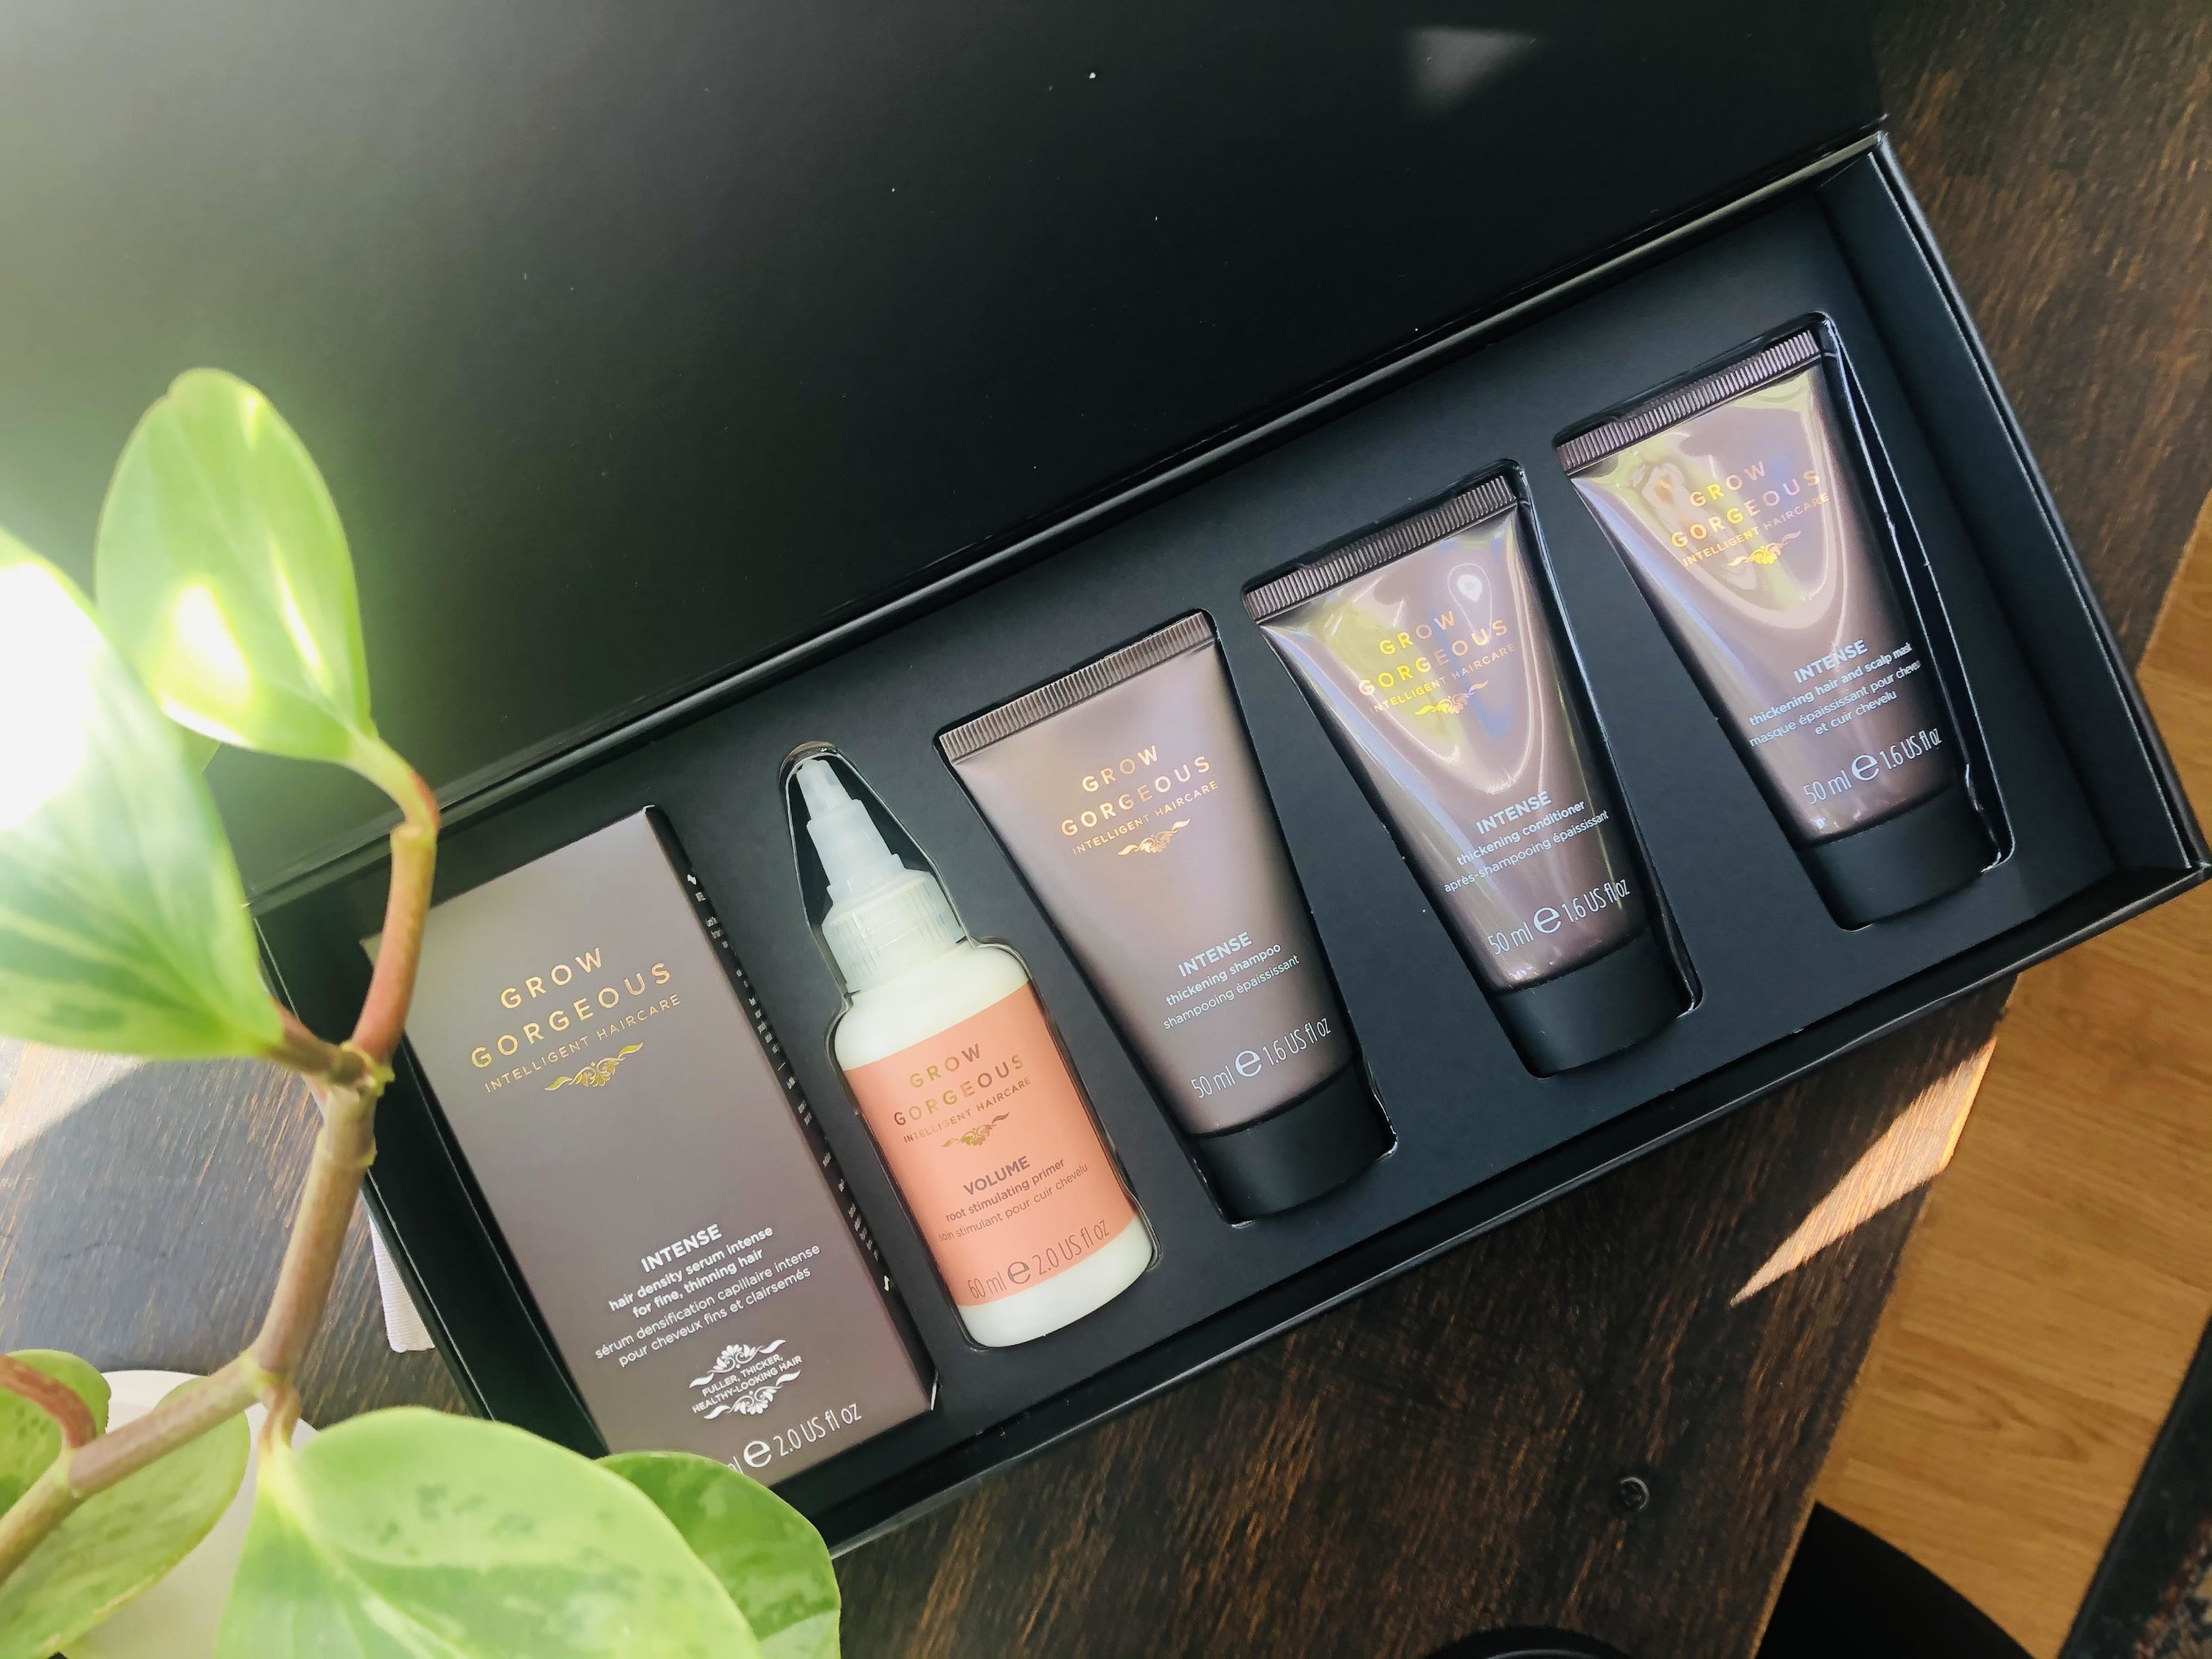 The box of hair products